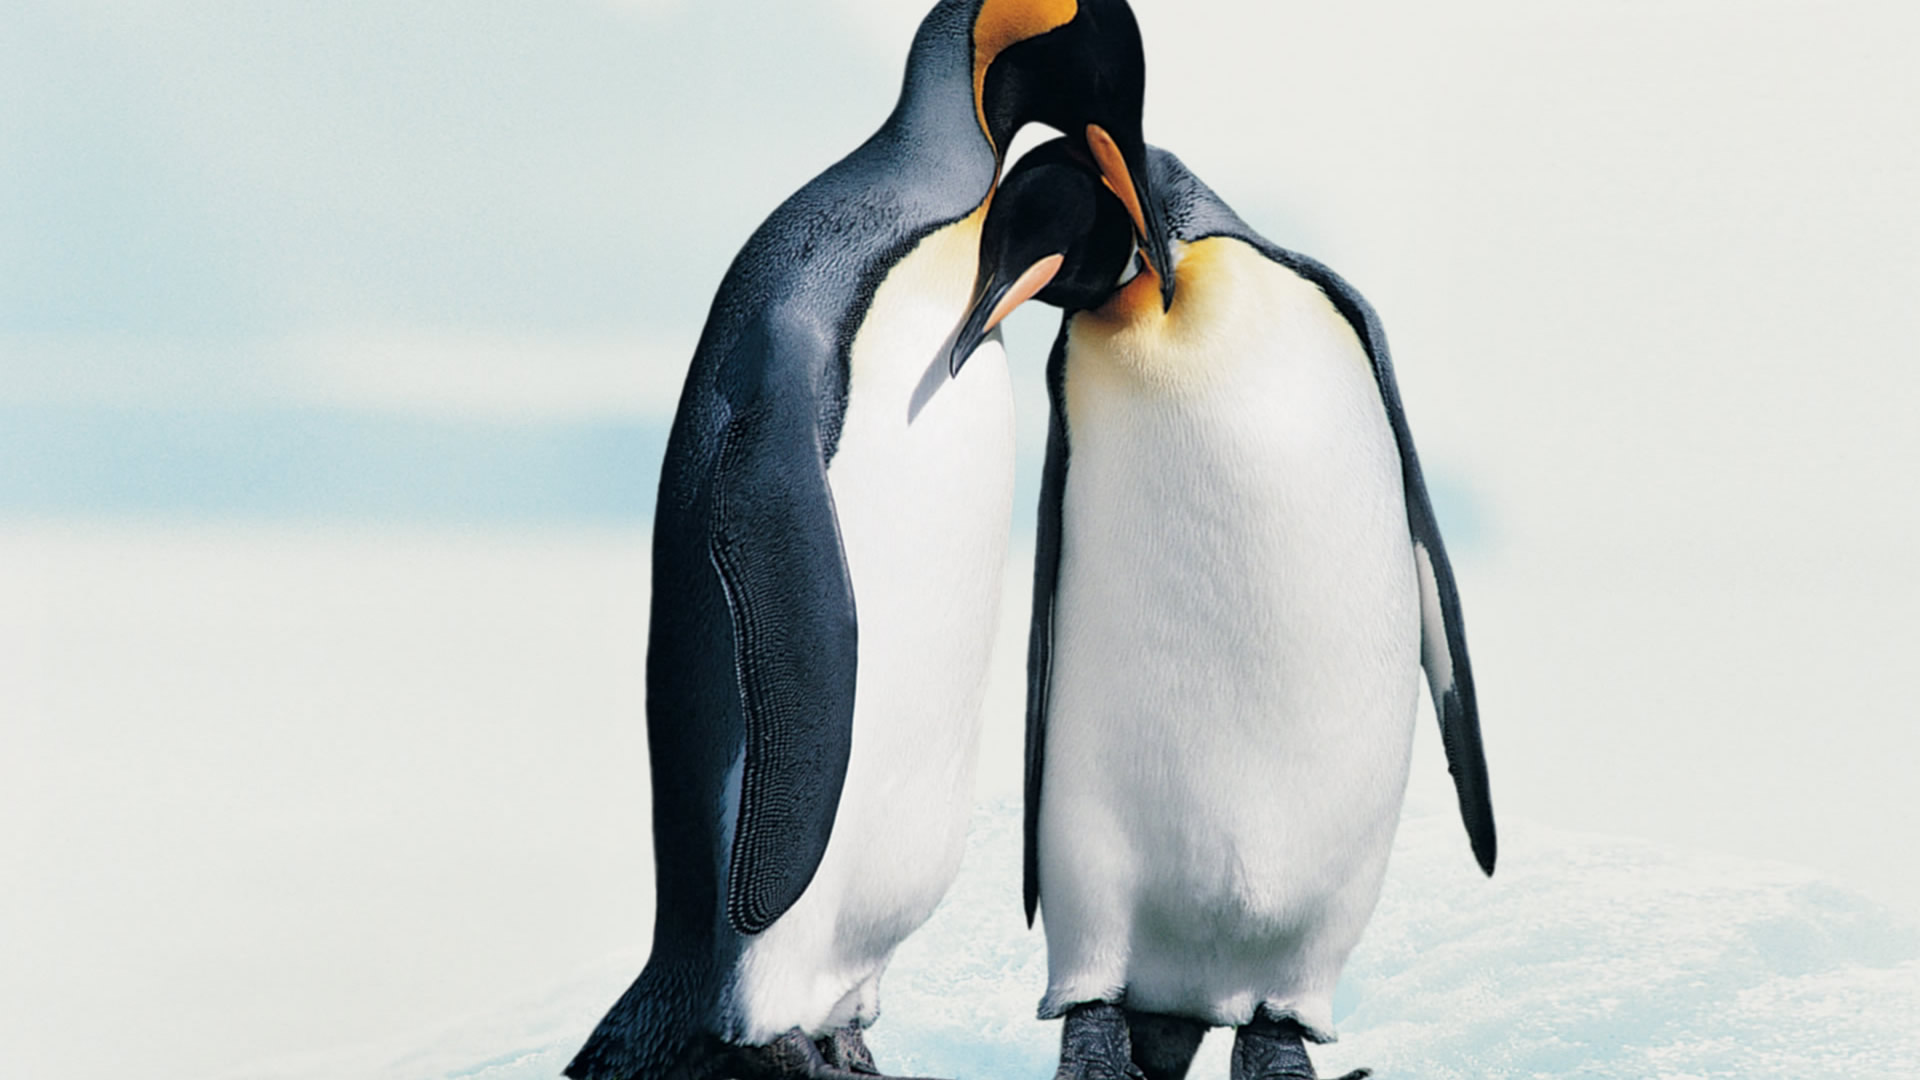 penguin picture hd